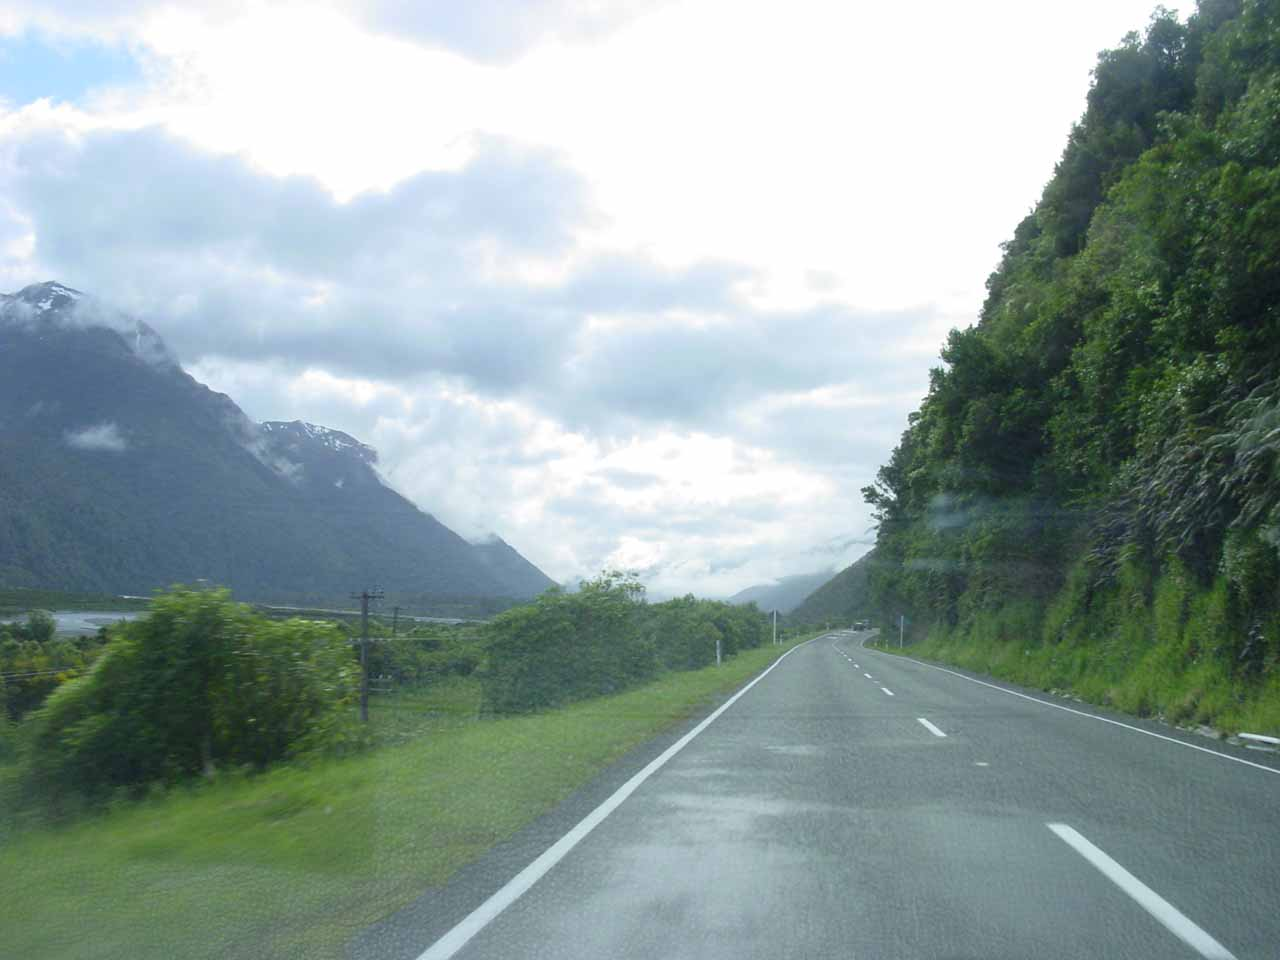 Driving along the Arthur's Pass Highway (SH73) as we were leaving the Kumara Junction